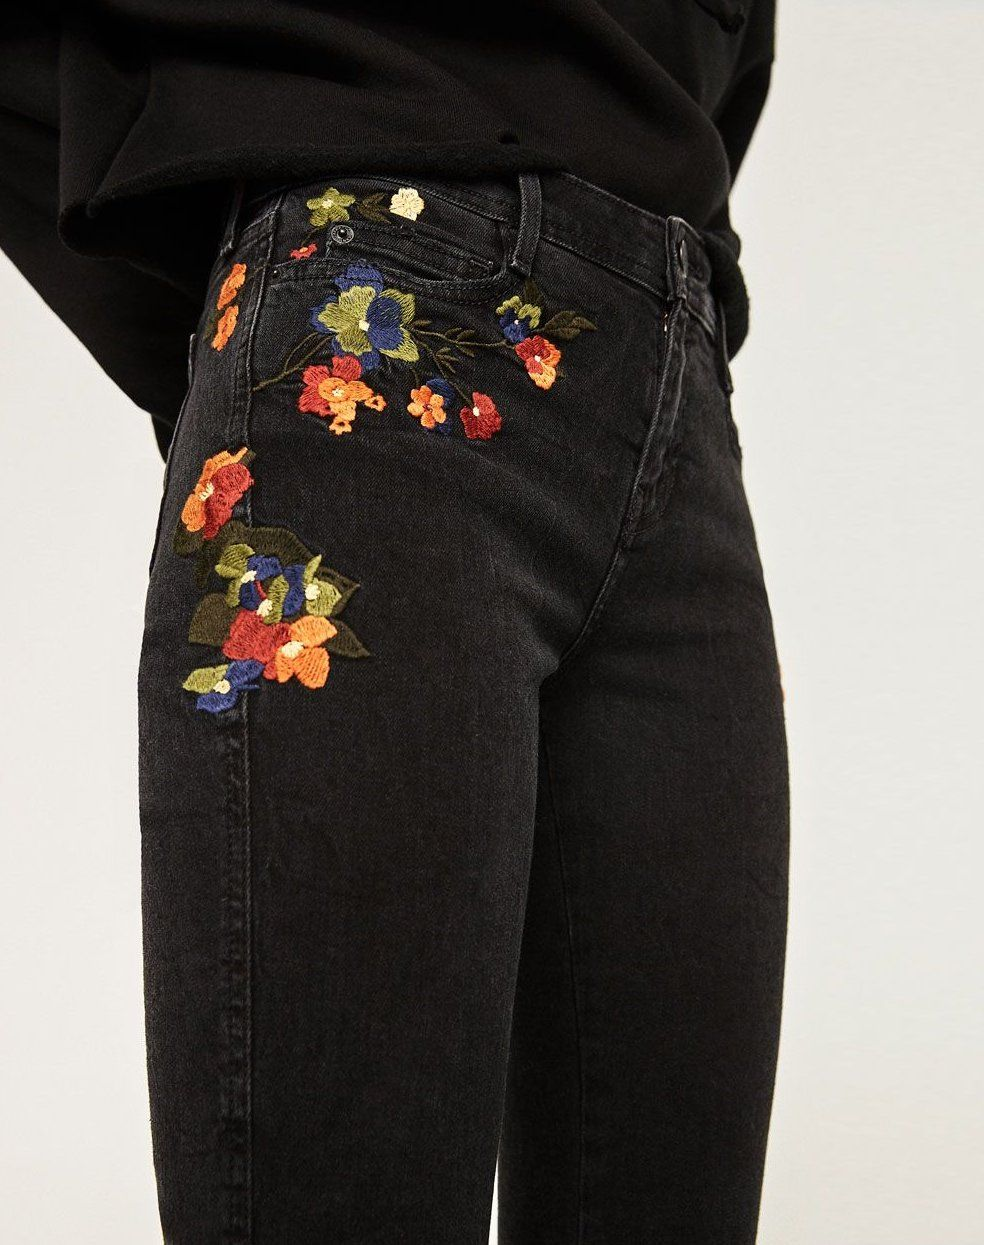 JEAN SKINNY TAILLE NORMALE BRODÉS-Tout voir-JEANS-FEMME | ZARA France #embroidered #jeans #outfit #casual